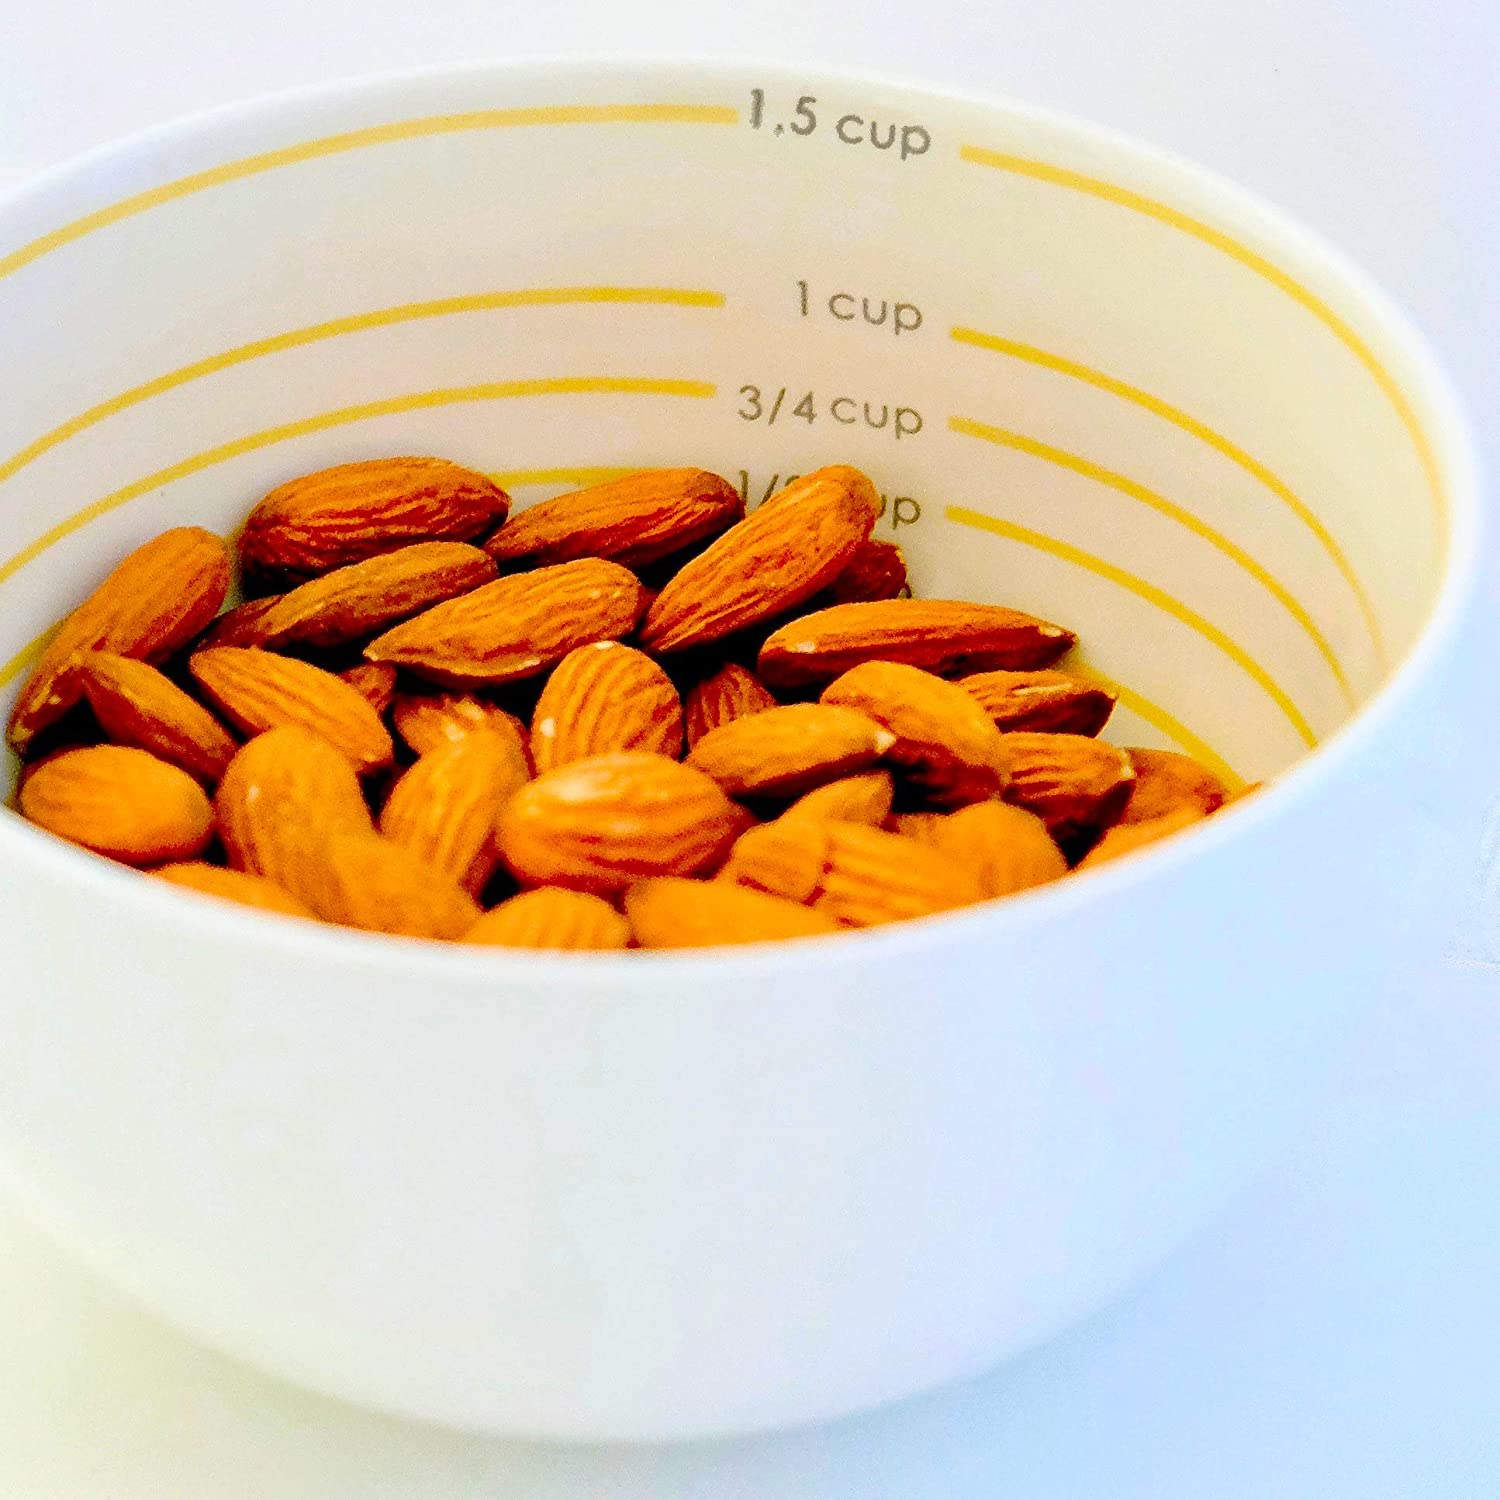 Portion Control Bowl for Soup Cereal & Snacks   Porcelain Bowl for Healthy Eating & Weight Loss (1)